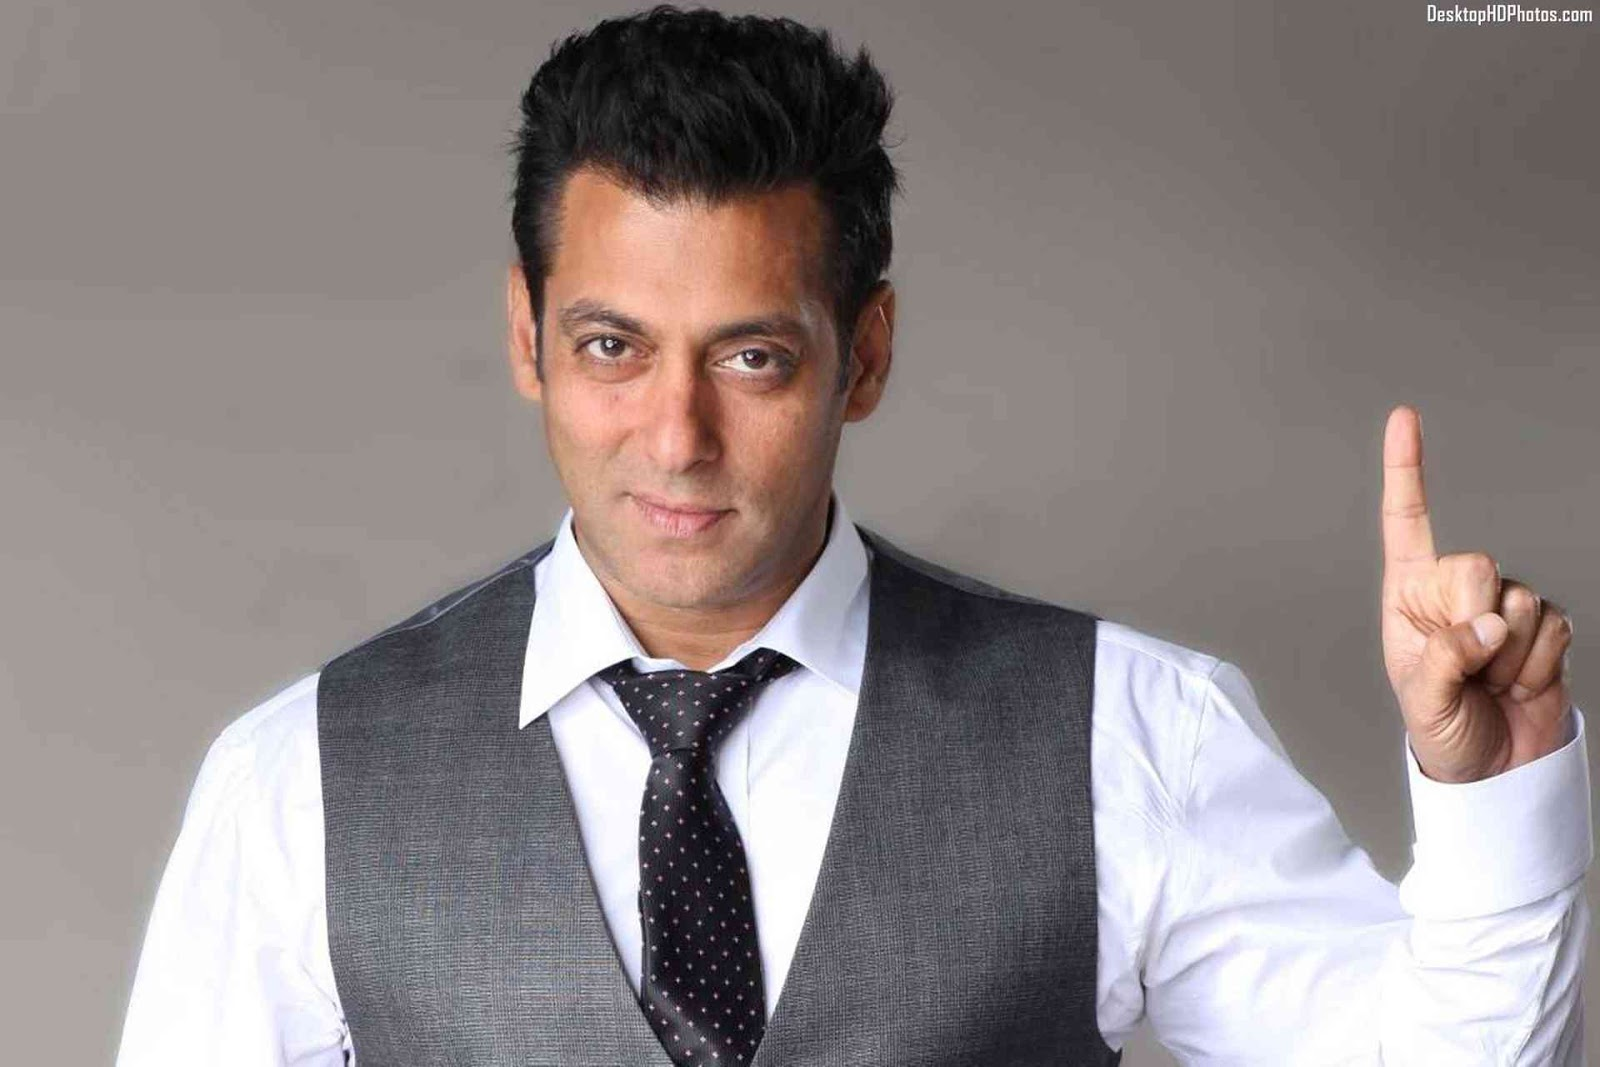 Salman khan hd wallpapers latest pics images 2016 for Current wallpaper trends 2016